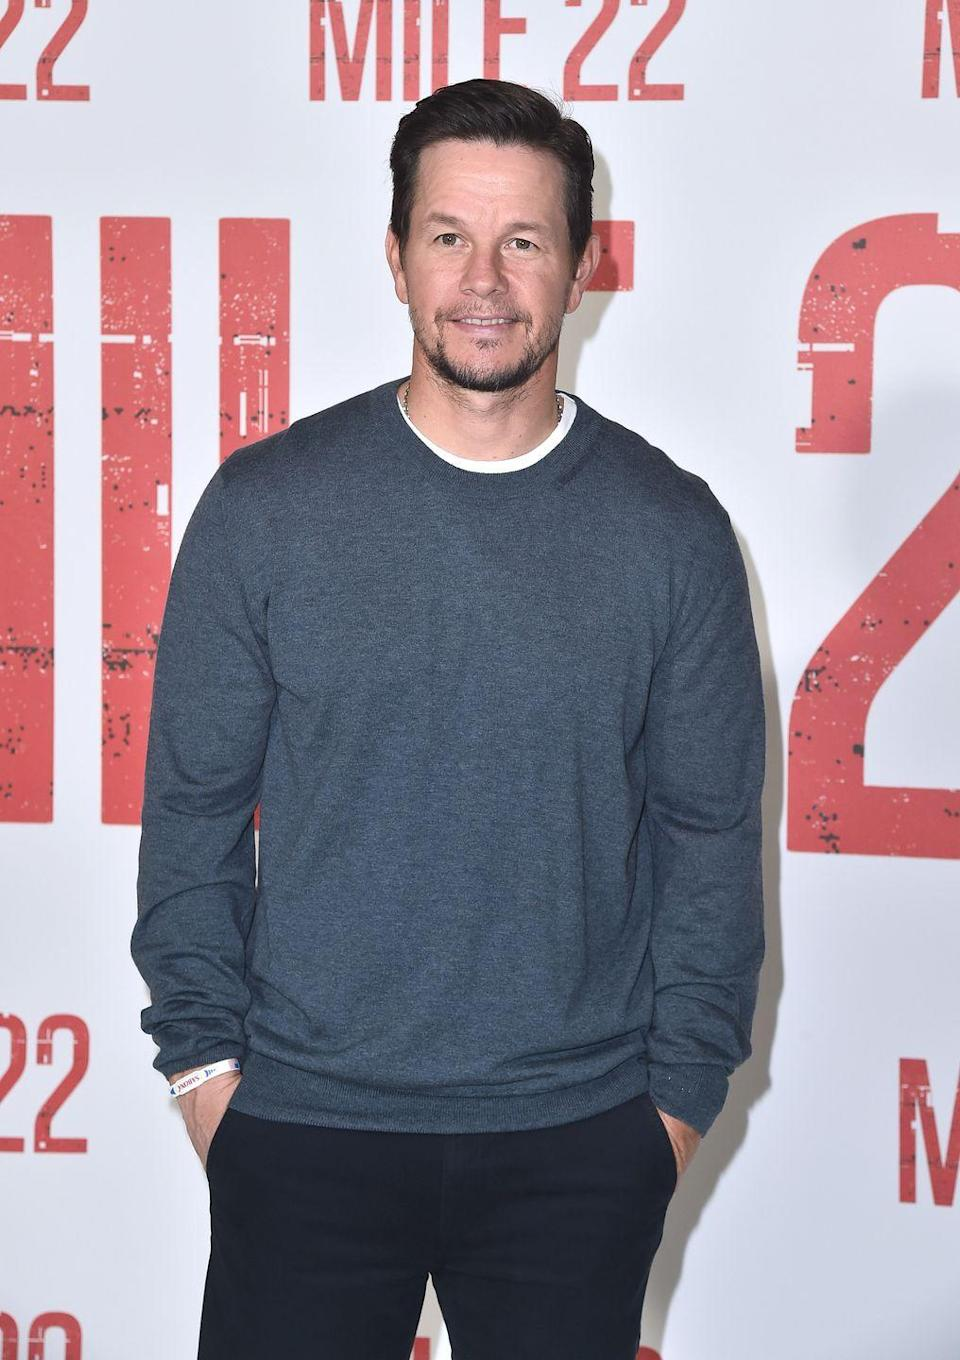 """<p>For the actor/entrepreneur, fitness isn't just about muscle mass—it's about <em>functional</em> strength. """"When we're training together, my philosophy comes from...focusing on staying healthy and moving well,"""" Wahlberg's personal trainer Brian Nyugen told <em><a href=""""https://www.menshealth.com/fitness/a22698984/mark-wahlberg-workout-mile-22/"""" rel=""""nofollow noopener"""" target=""""_blank"""" data-ylk=""""slk:Men's Health"""" class=""""link rapid-noclick-resp"""">Men's Health</a></em>. """"That's been my job, getting him to moving better to address how he wants to train as an athlete.""""</p><p><a class=""""link rapid-noclick-resp"""" href=""""https://www.youtube.com/watch?v=8gal9HL31pg&t=8s"""" rel=""""nofollow noopener"""" target=""""_blank"""" data-ylk=""""slk:Watch here"""">Watch here</a></p>"""